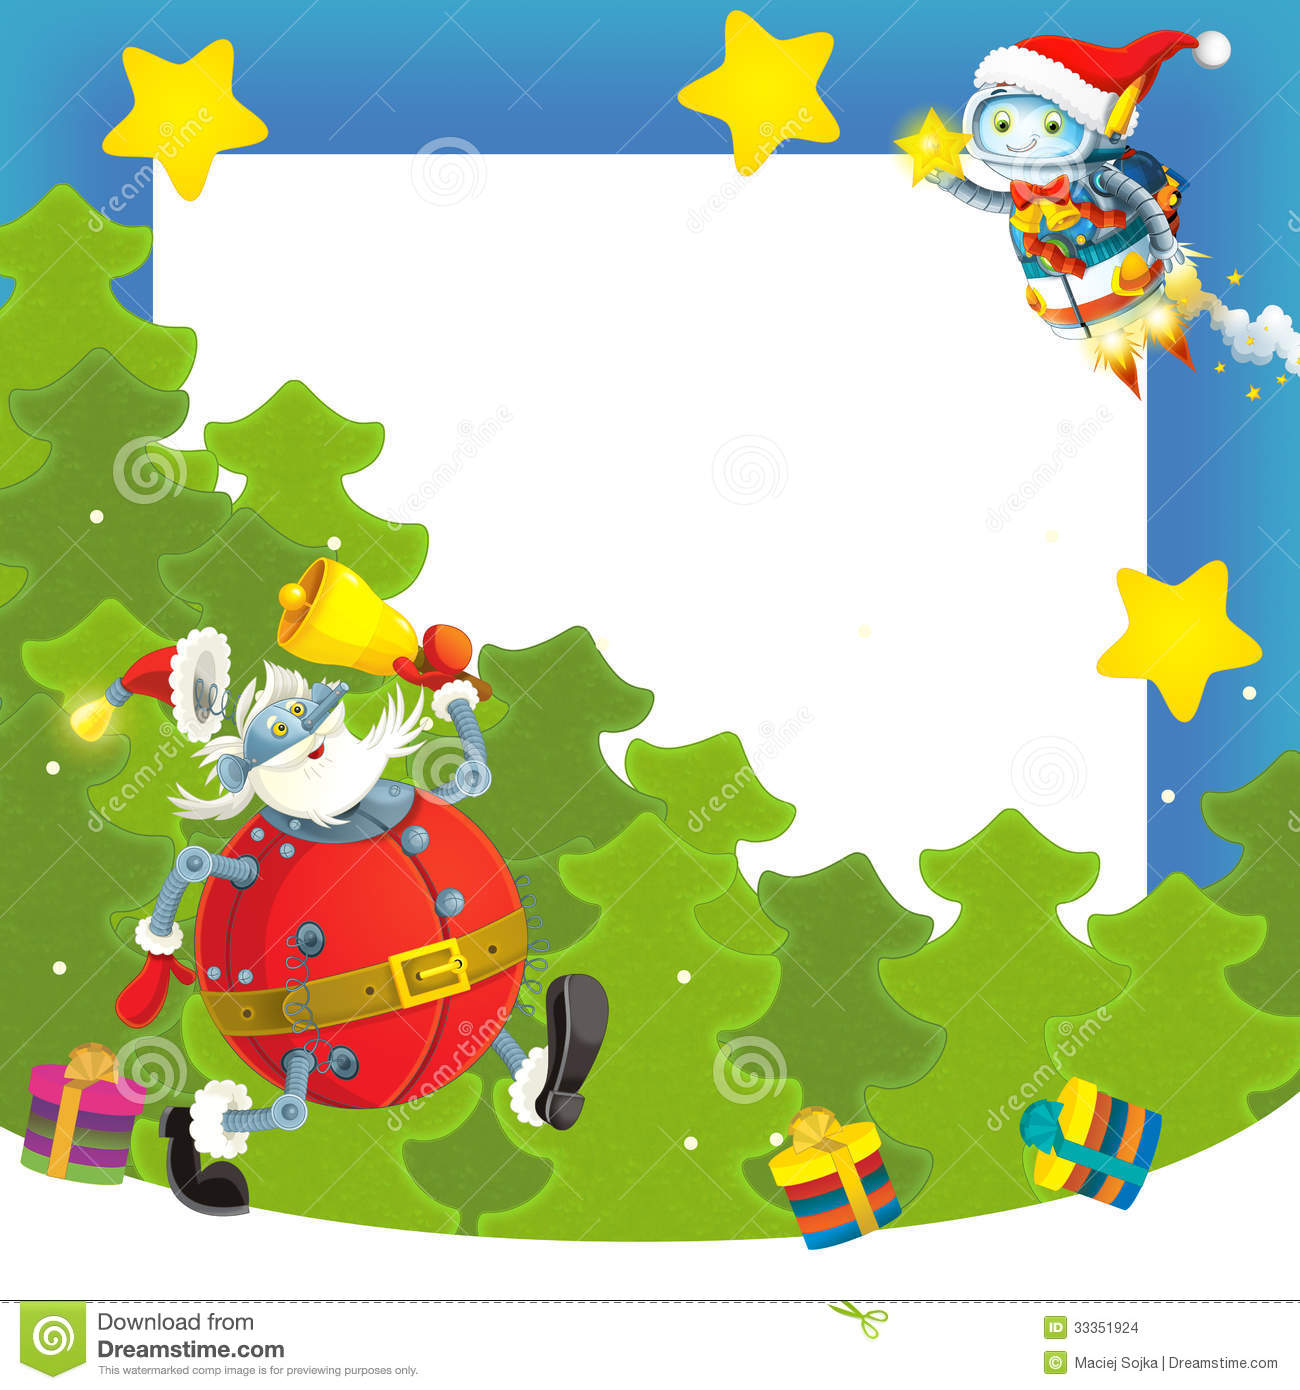 cartoon christmas border illustration for the children stock images - Christmas Images For Children